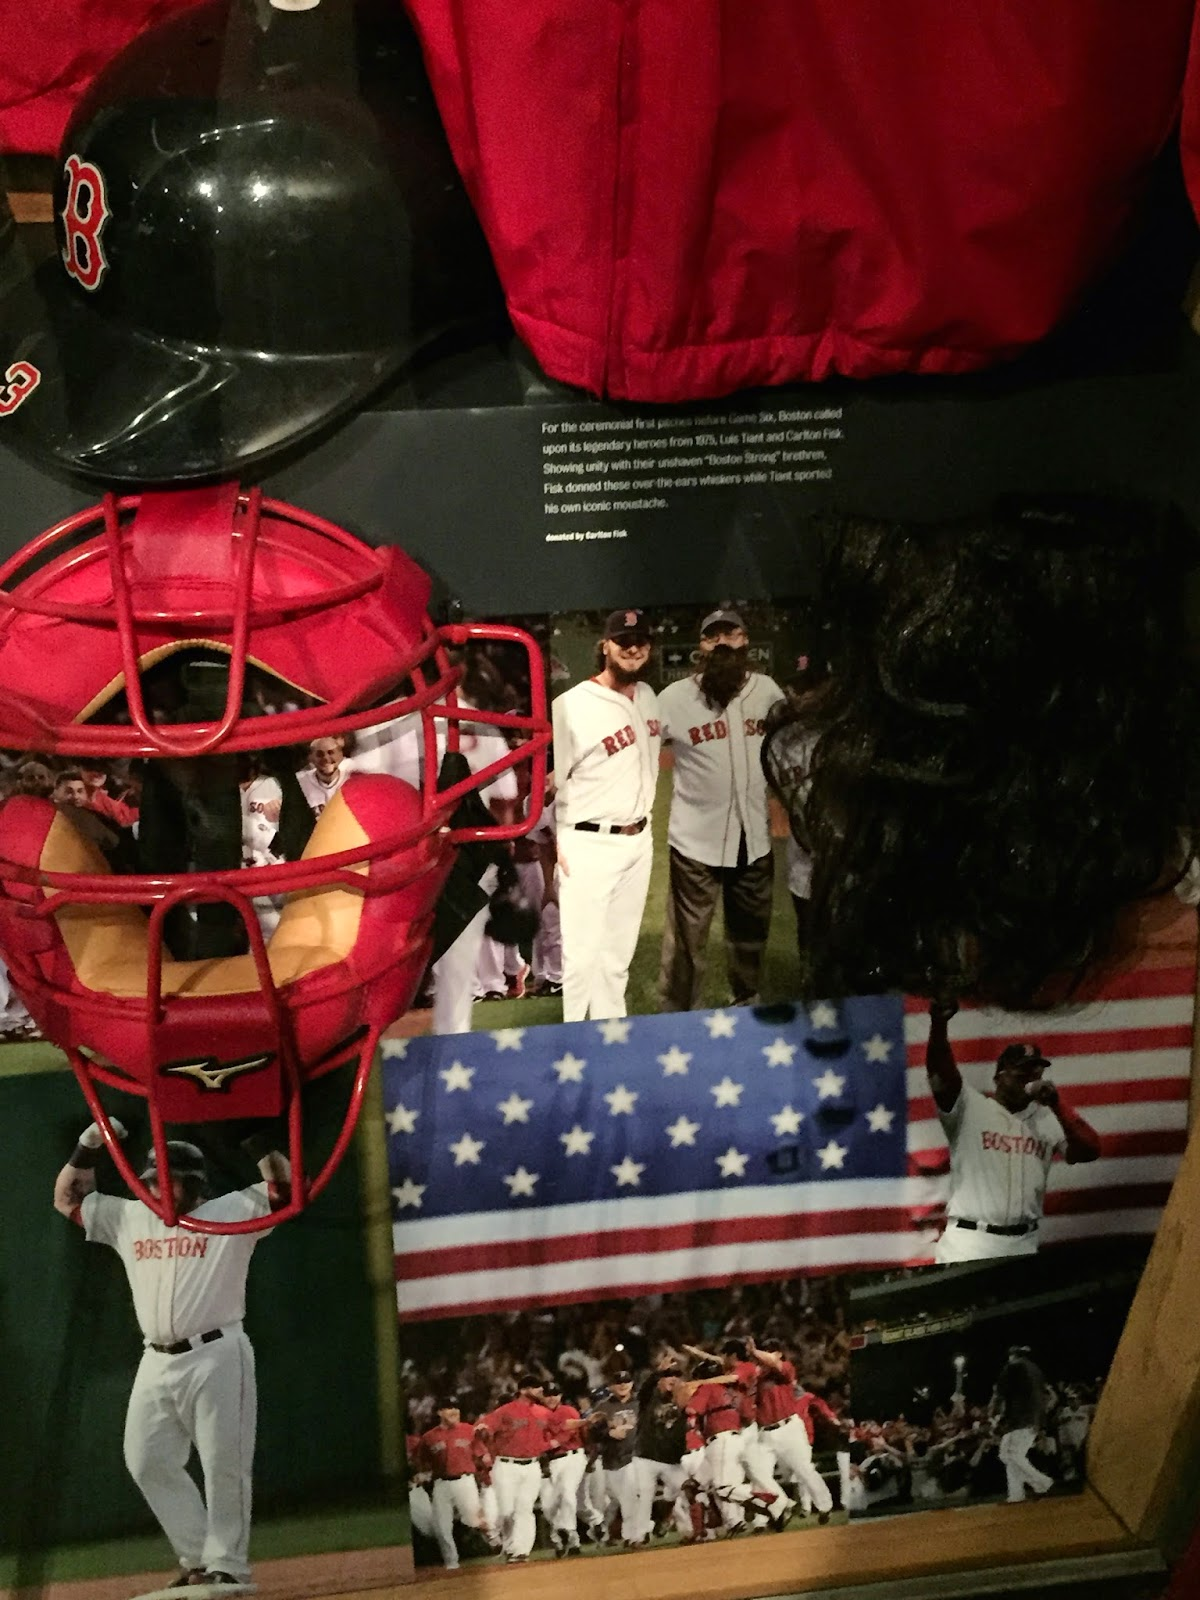 2013 World Series, Memorabilia, Red Sox